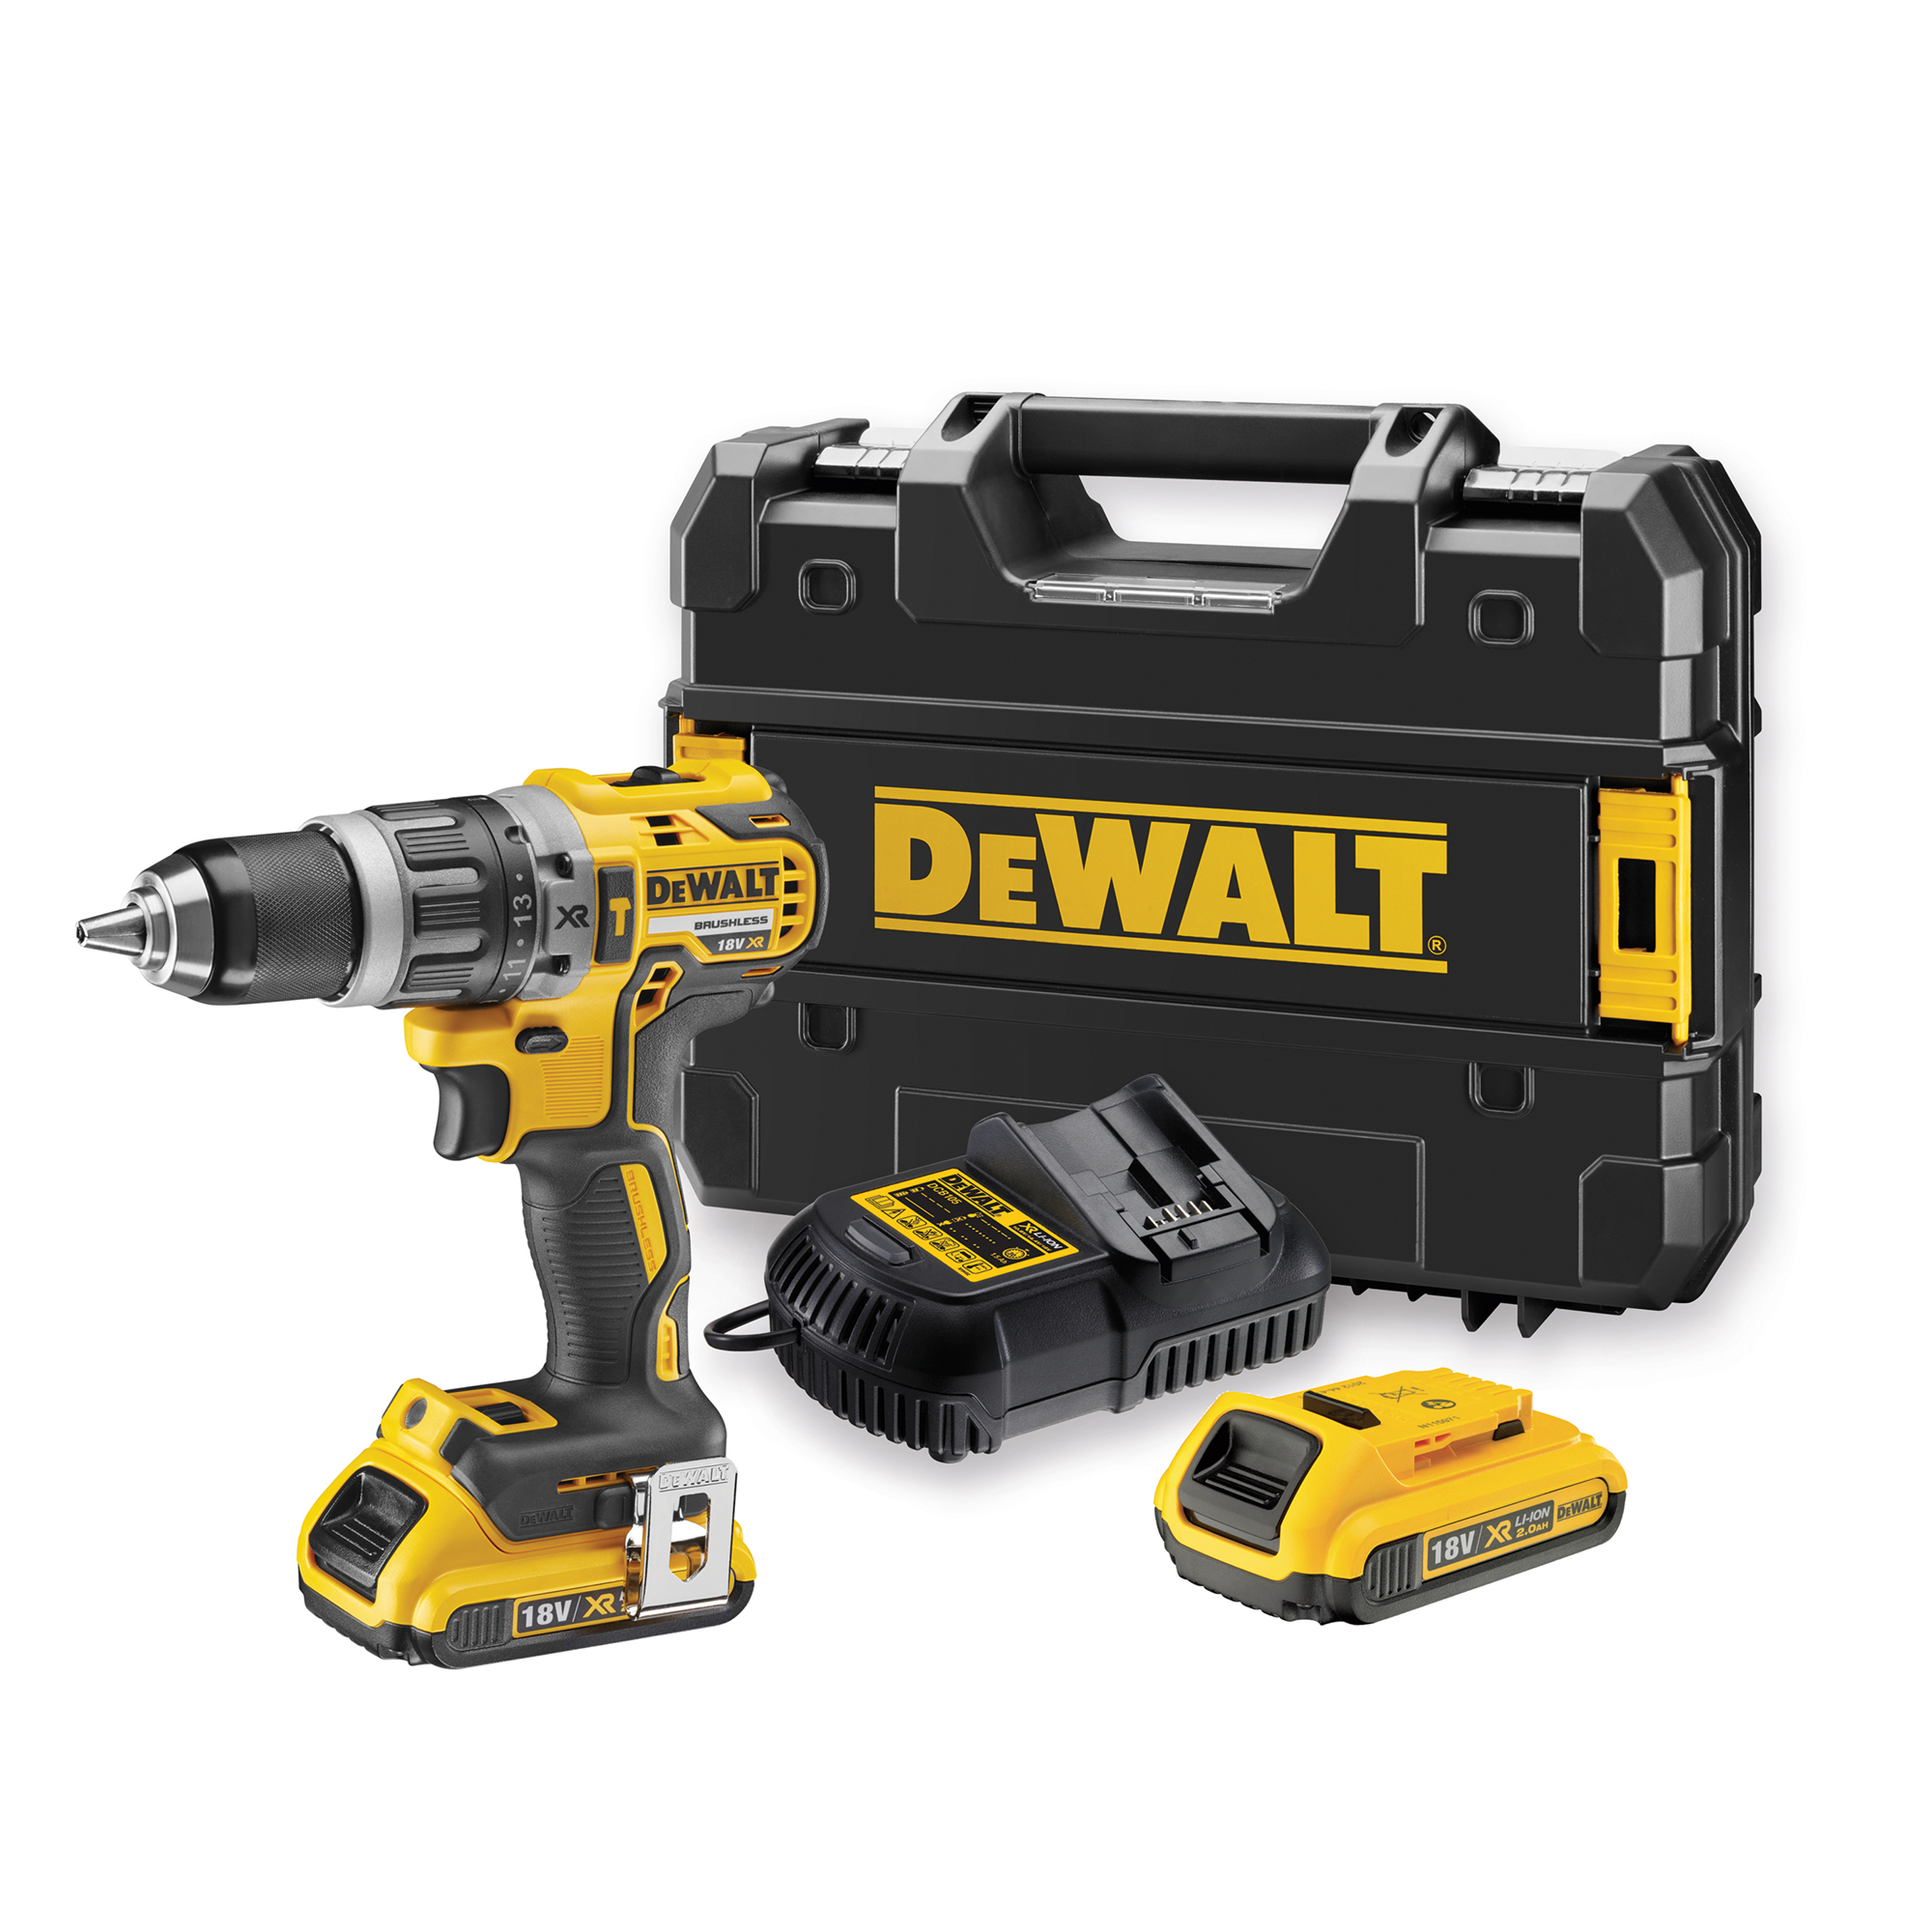 dewalt dcd796d2 dewalt 18v brushless 2nd generation hammer drill driver. Black Bedroom Furniture Sets. Home Design Ideas